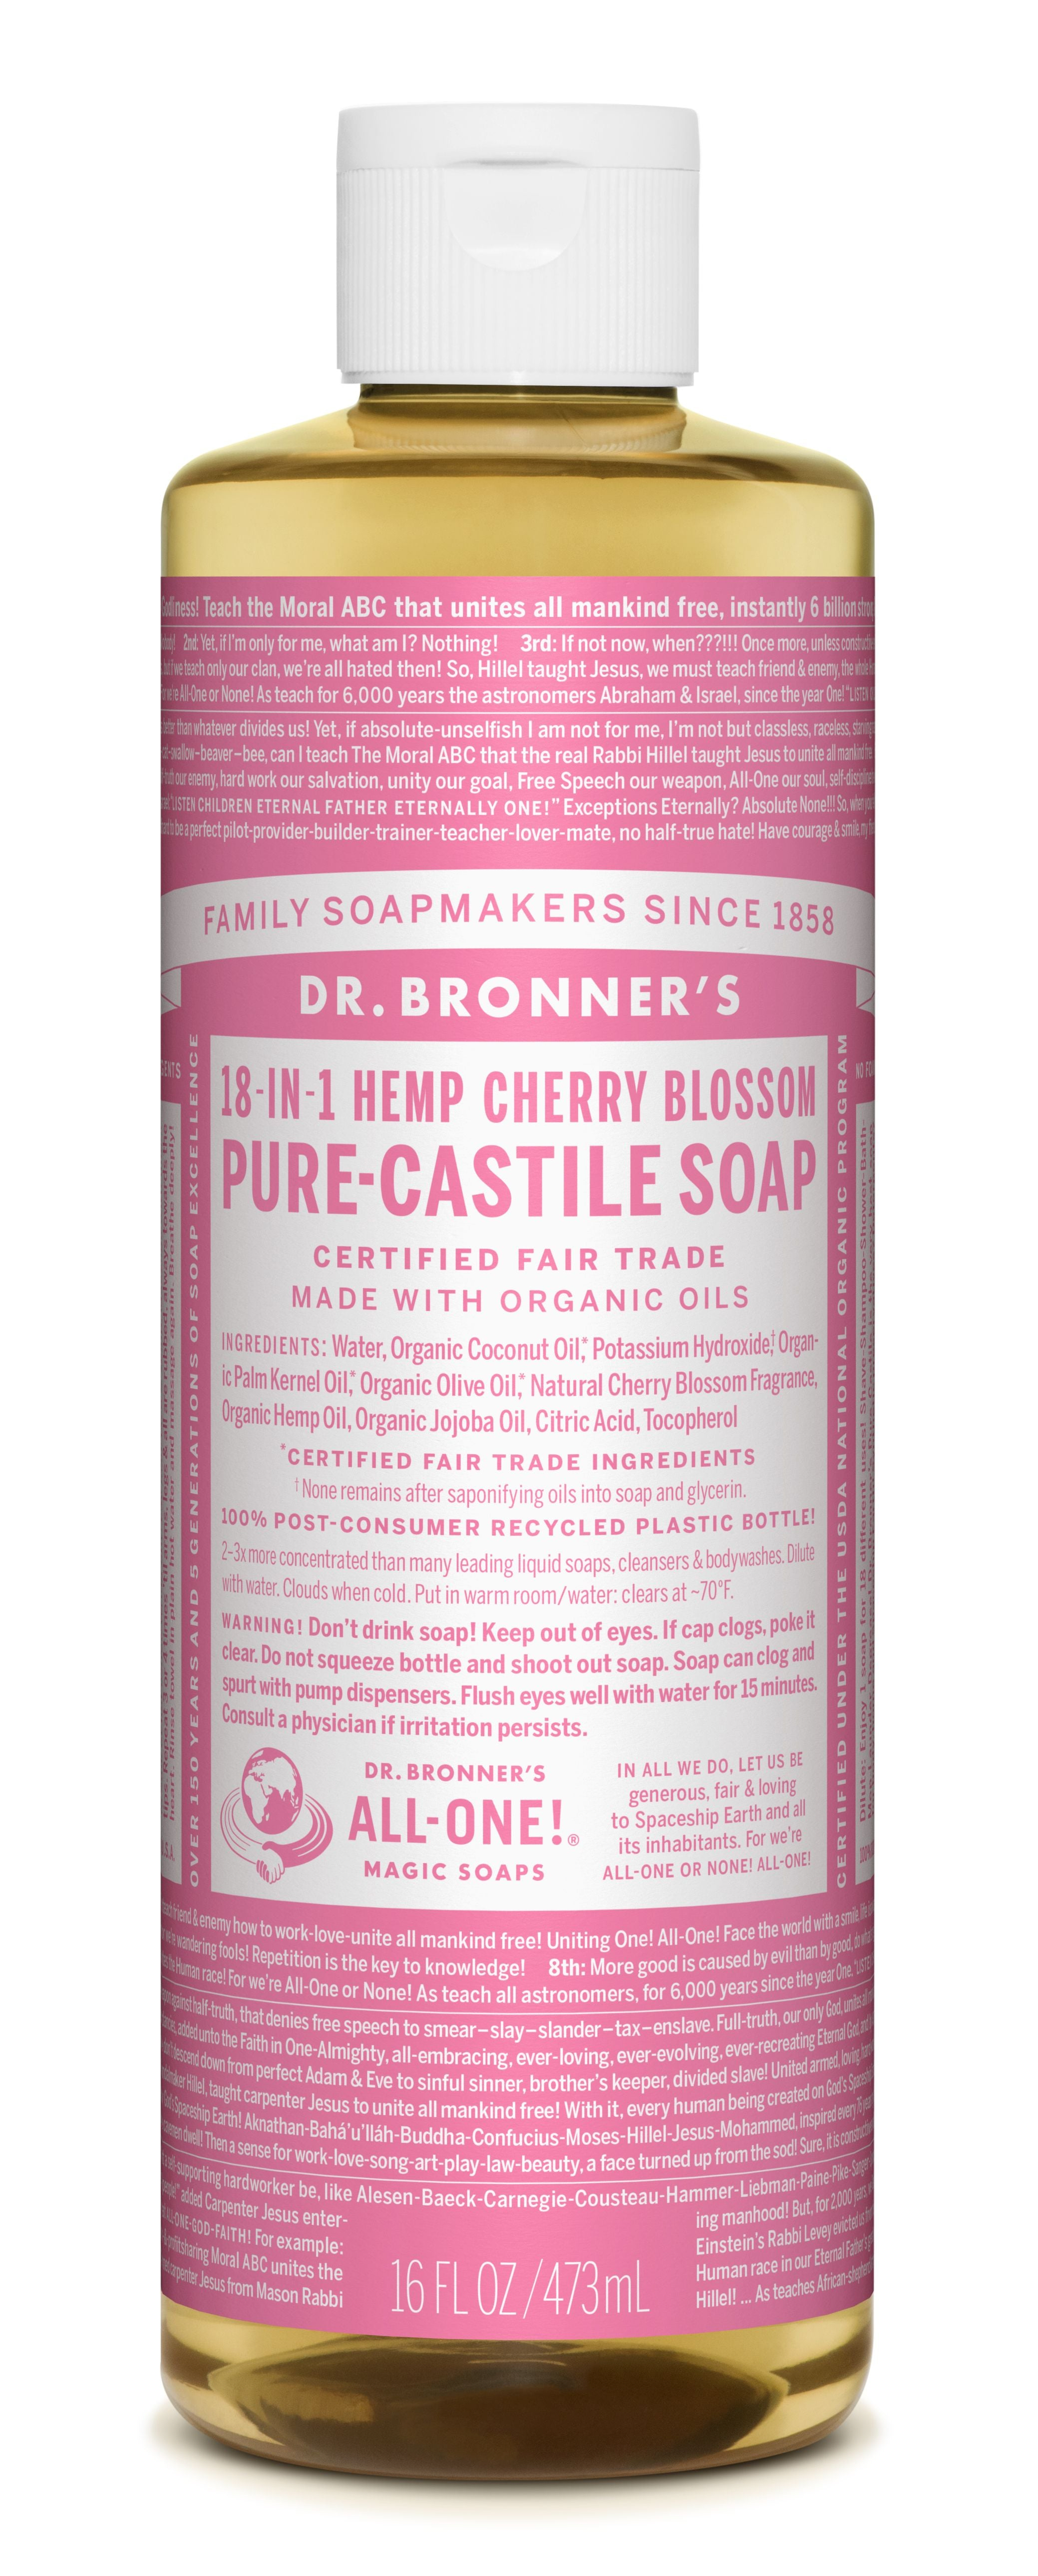 Dr Bronner's 18-In-1 Hemp Cherry Blossom Pure Castile Soap 473ml